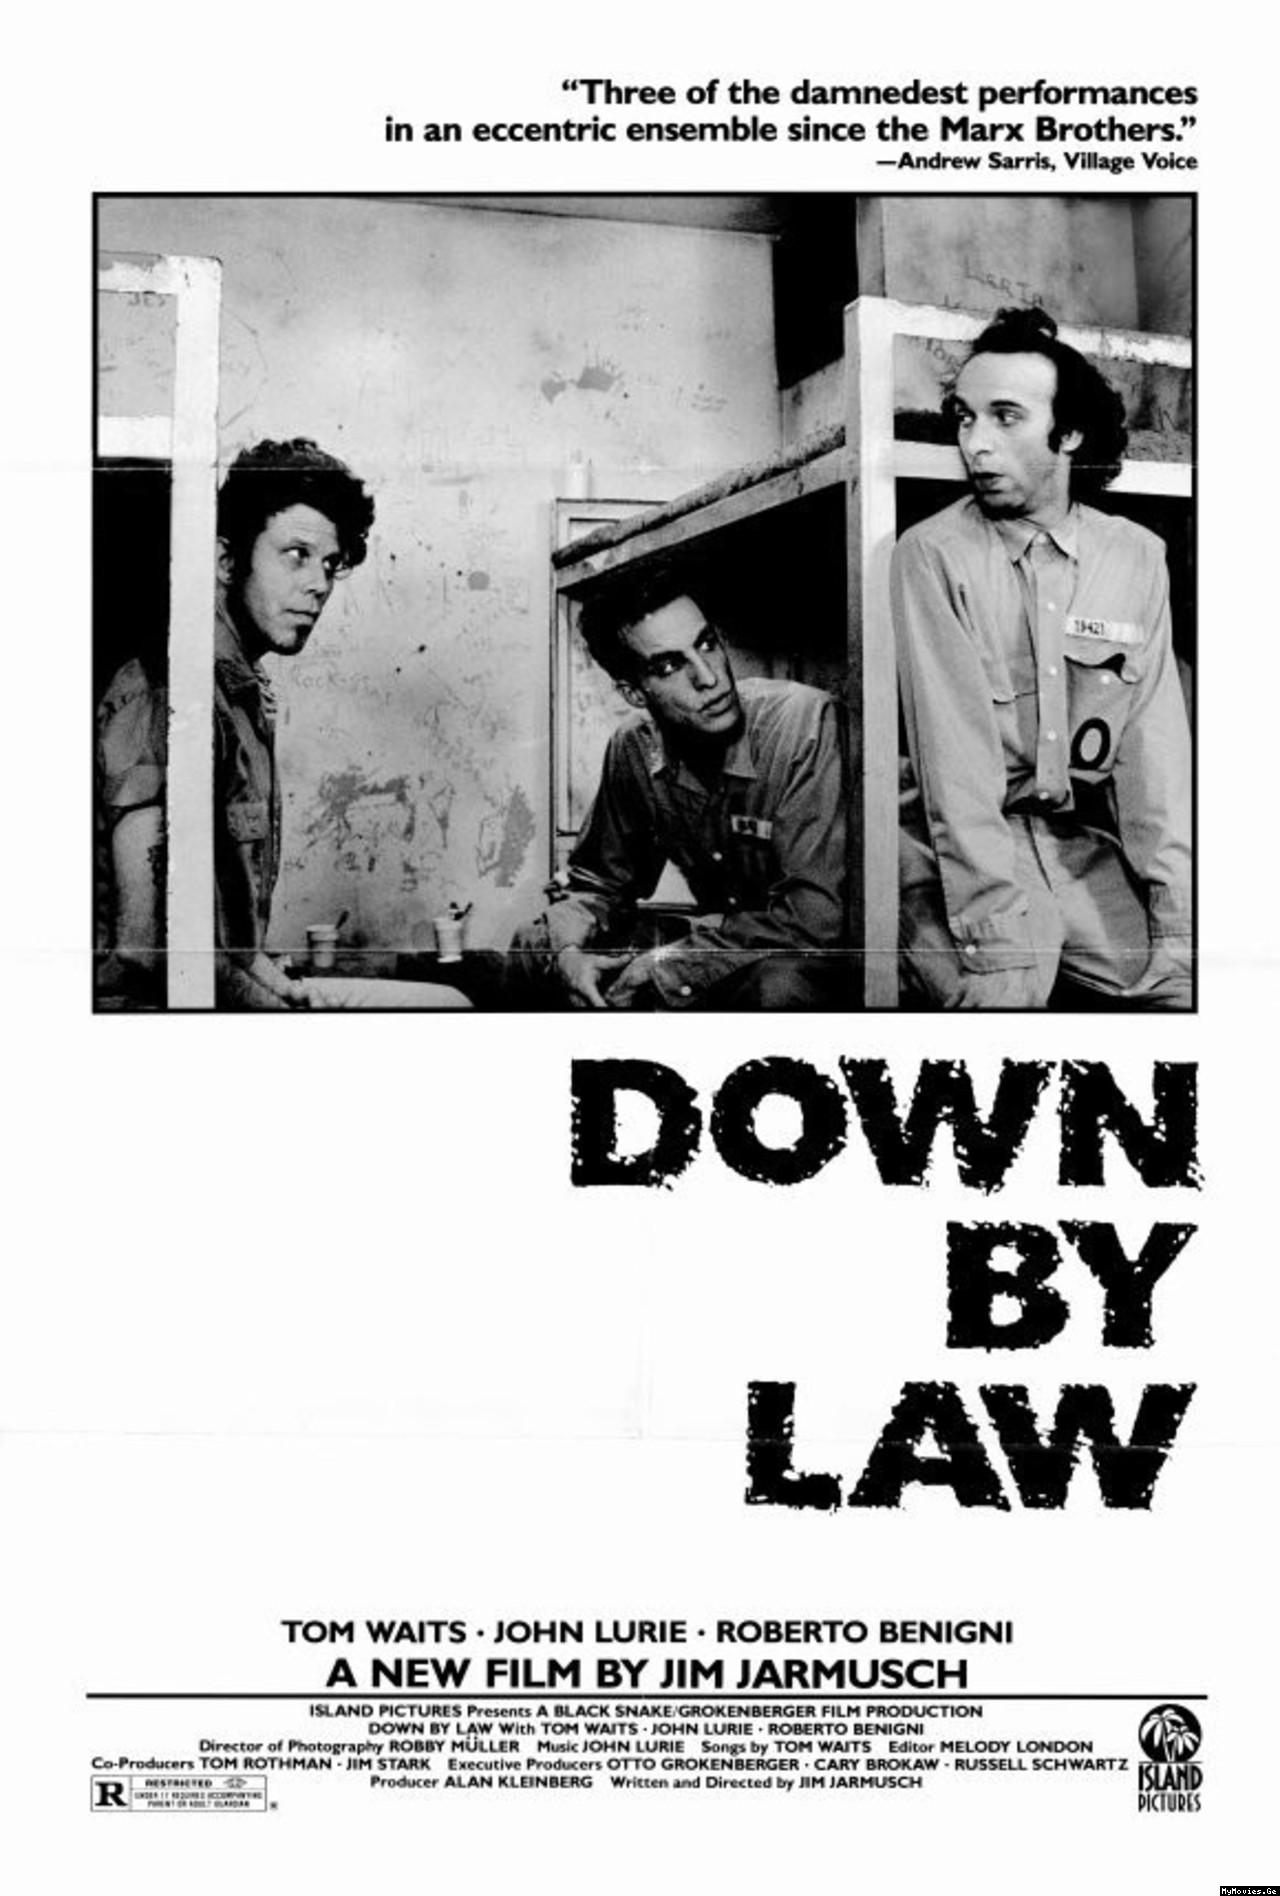 John Lurie Original Soundtracks By John Lurie From Down By Law And Variety